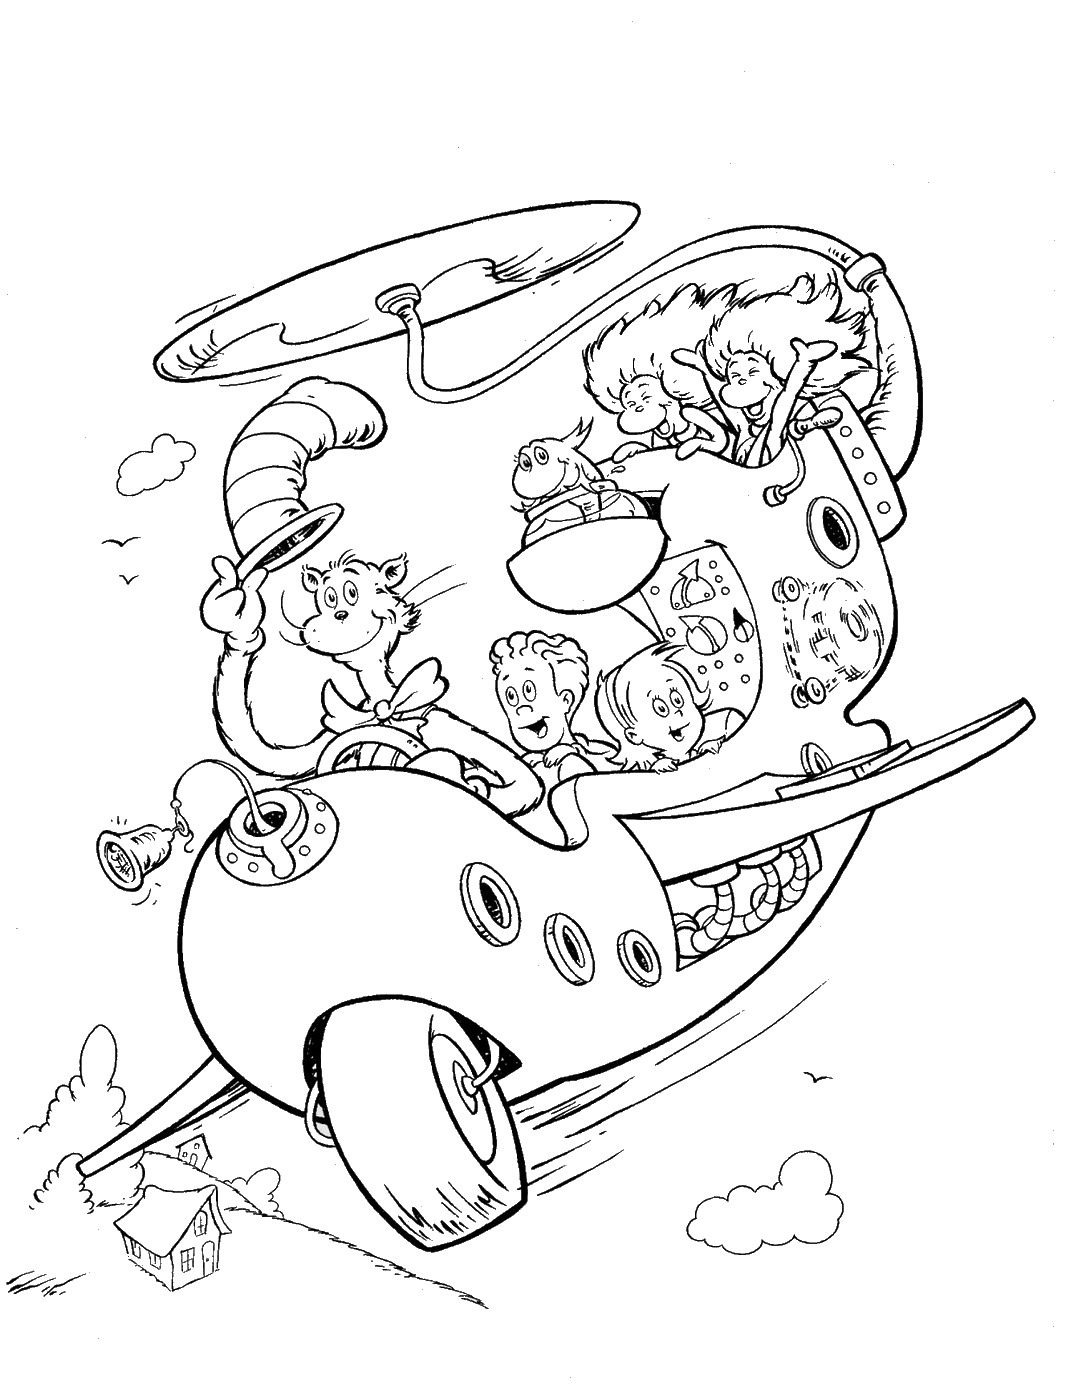 Coloring page of cat in the hat - Dr Seuss Printable Coloring Pages